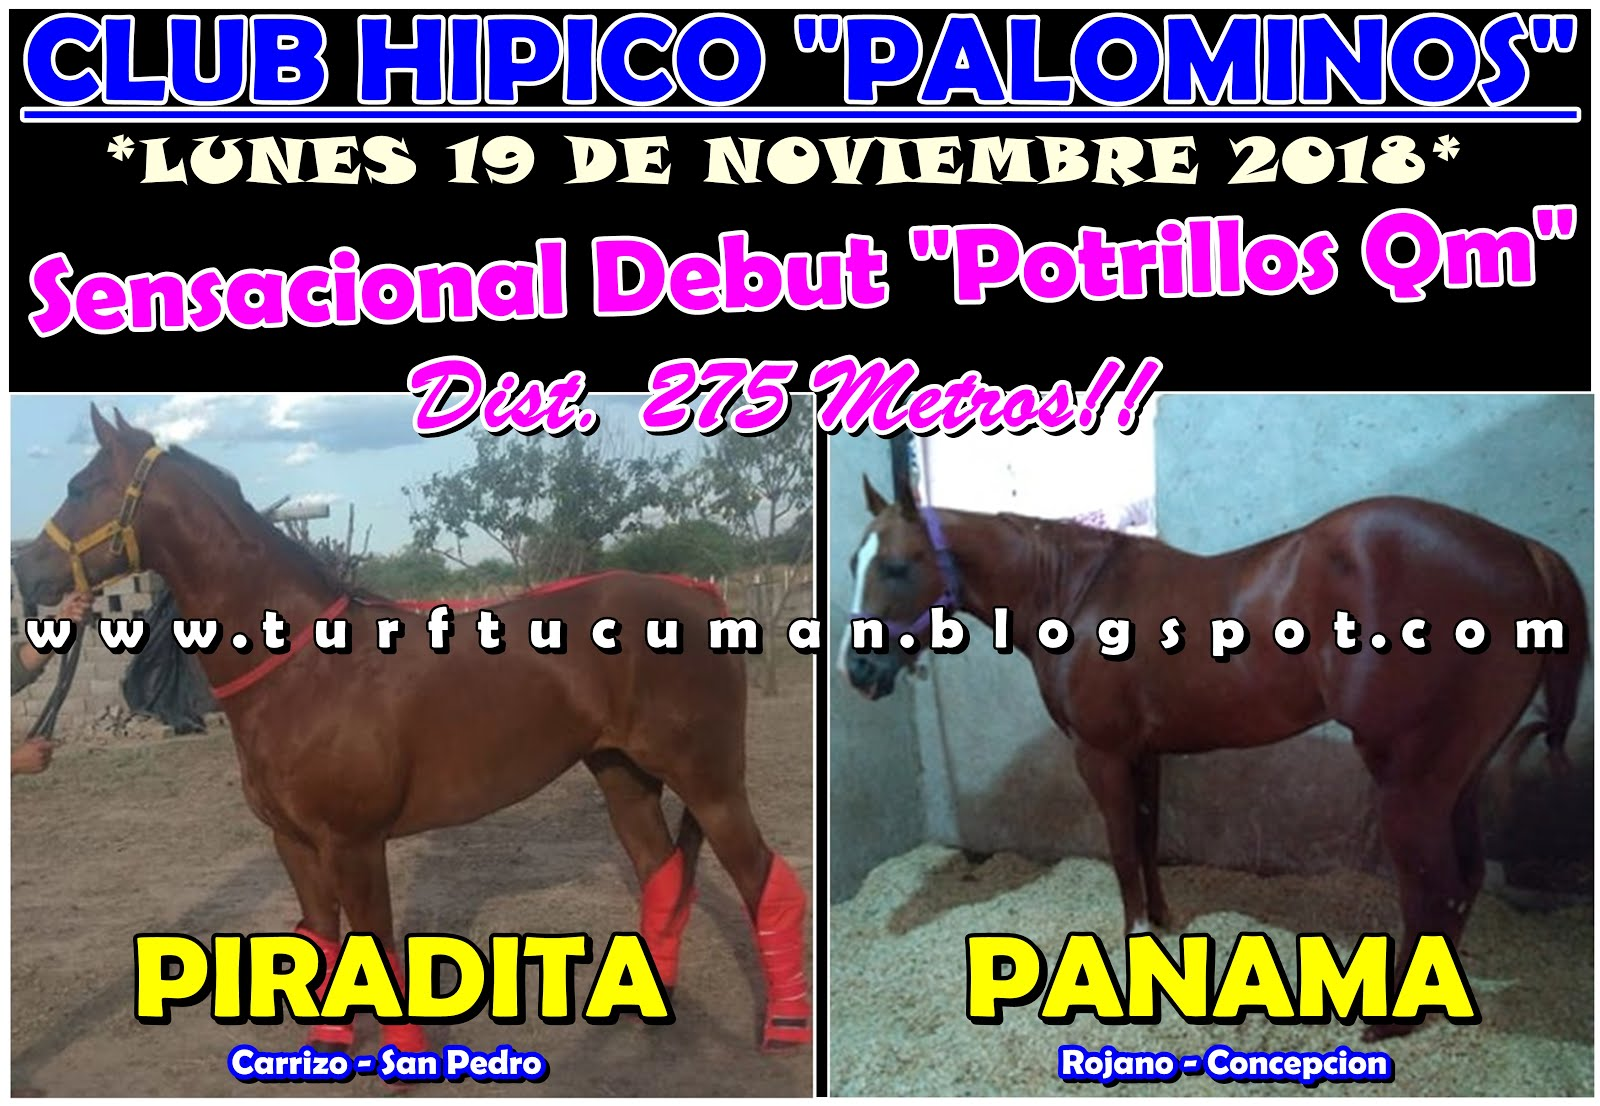 PIRADITA VS PANAMA